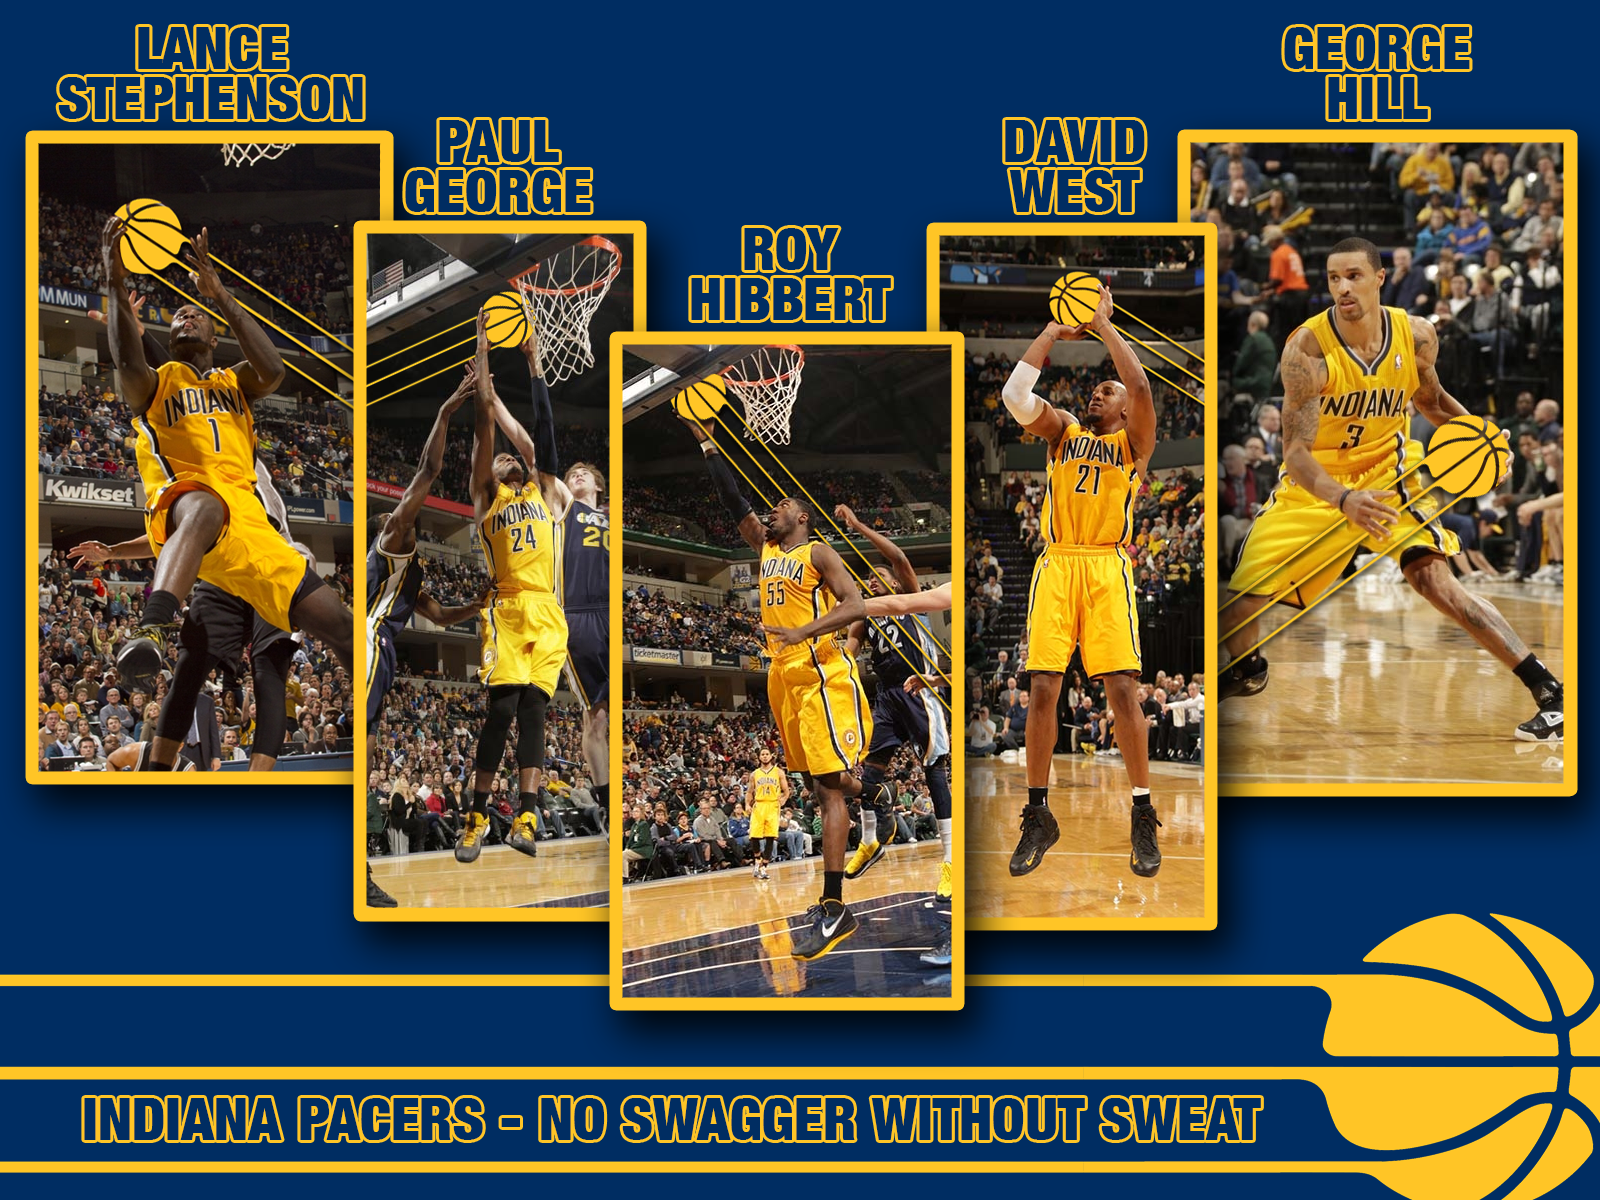 Indiana Pacers 5 Wallpaper